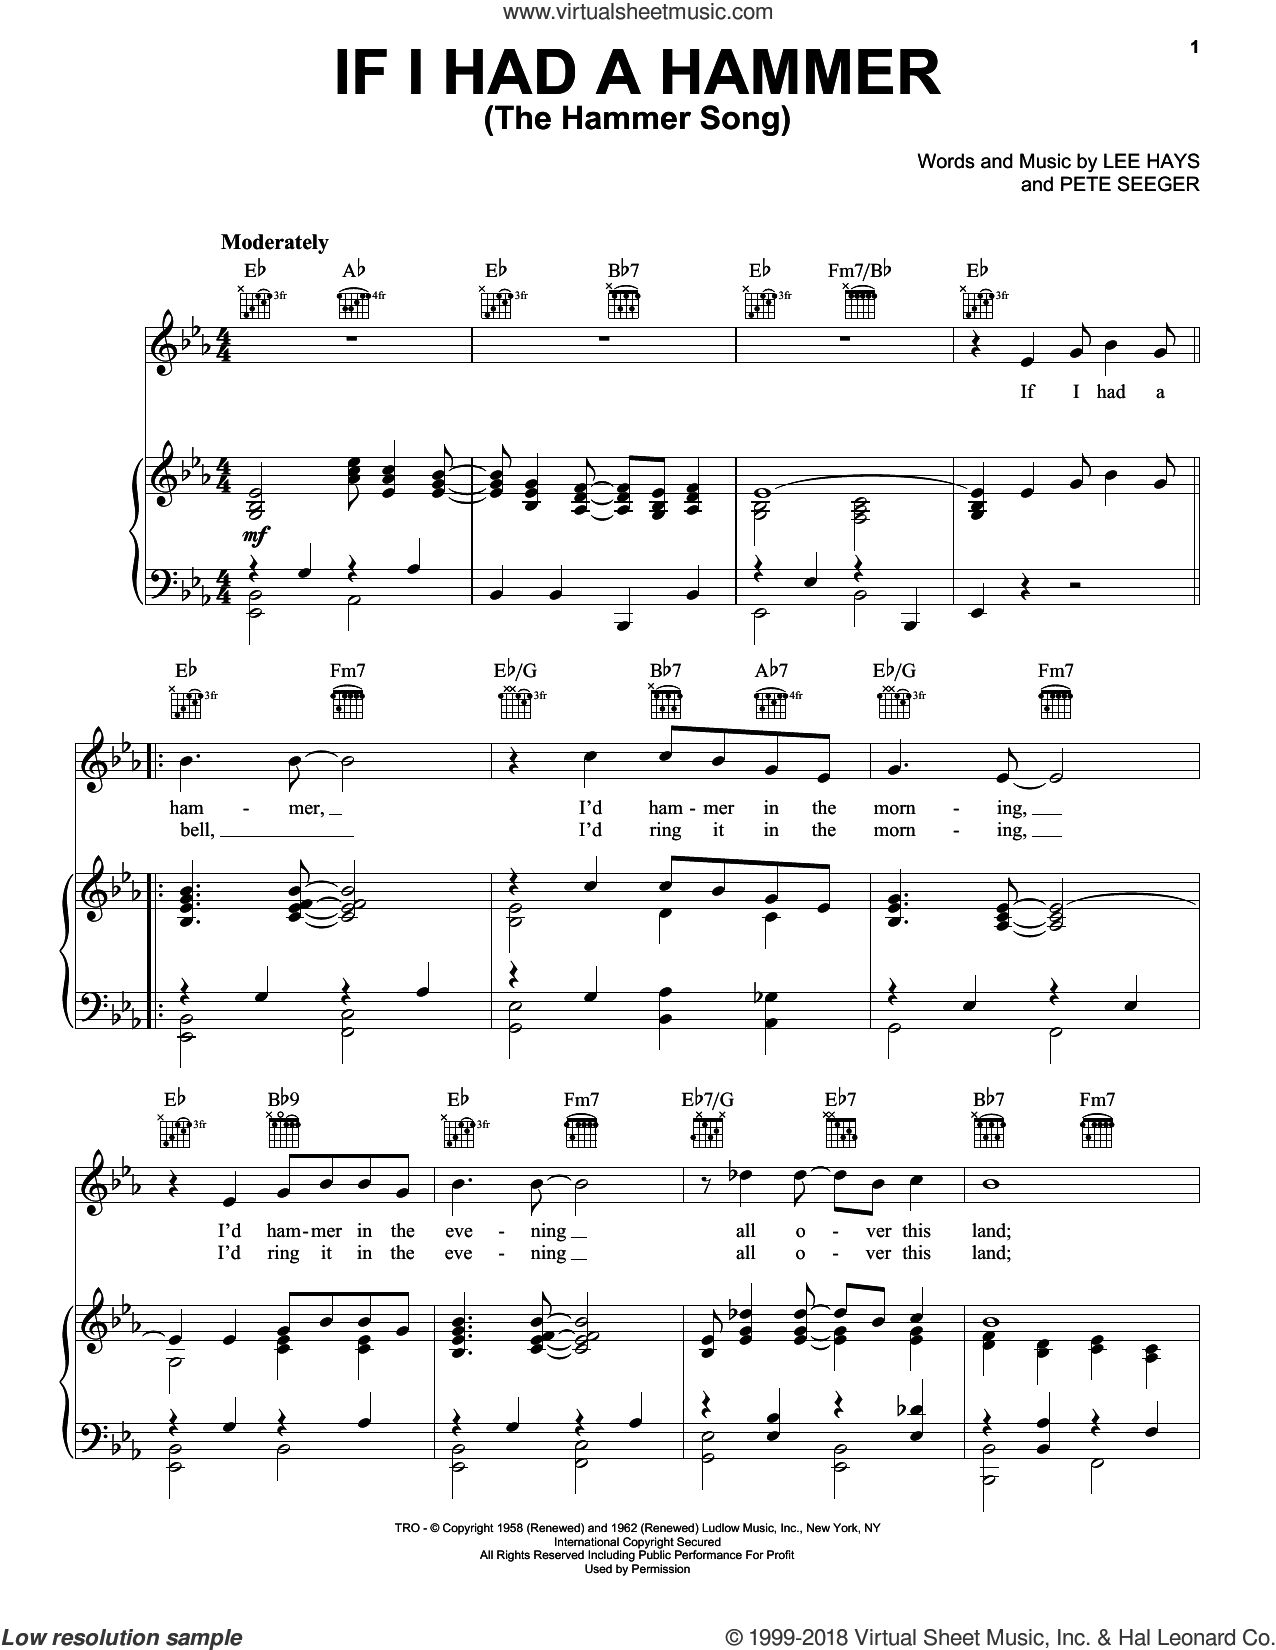 If I Had A Hammer (The Hammer Song) sheet music for voice, piano or guitar by Peter, Paul & Mary, Trini Lopez, Lee Hays and Pete Seeger, intermediate skill level